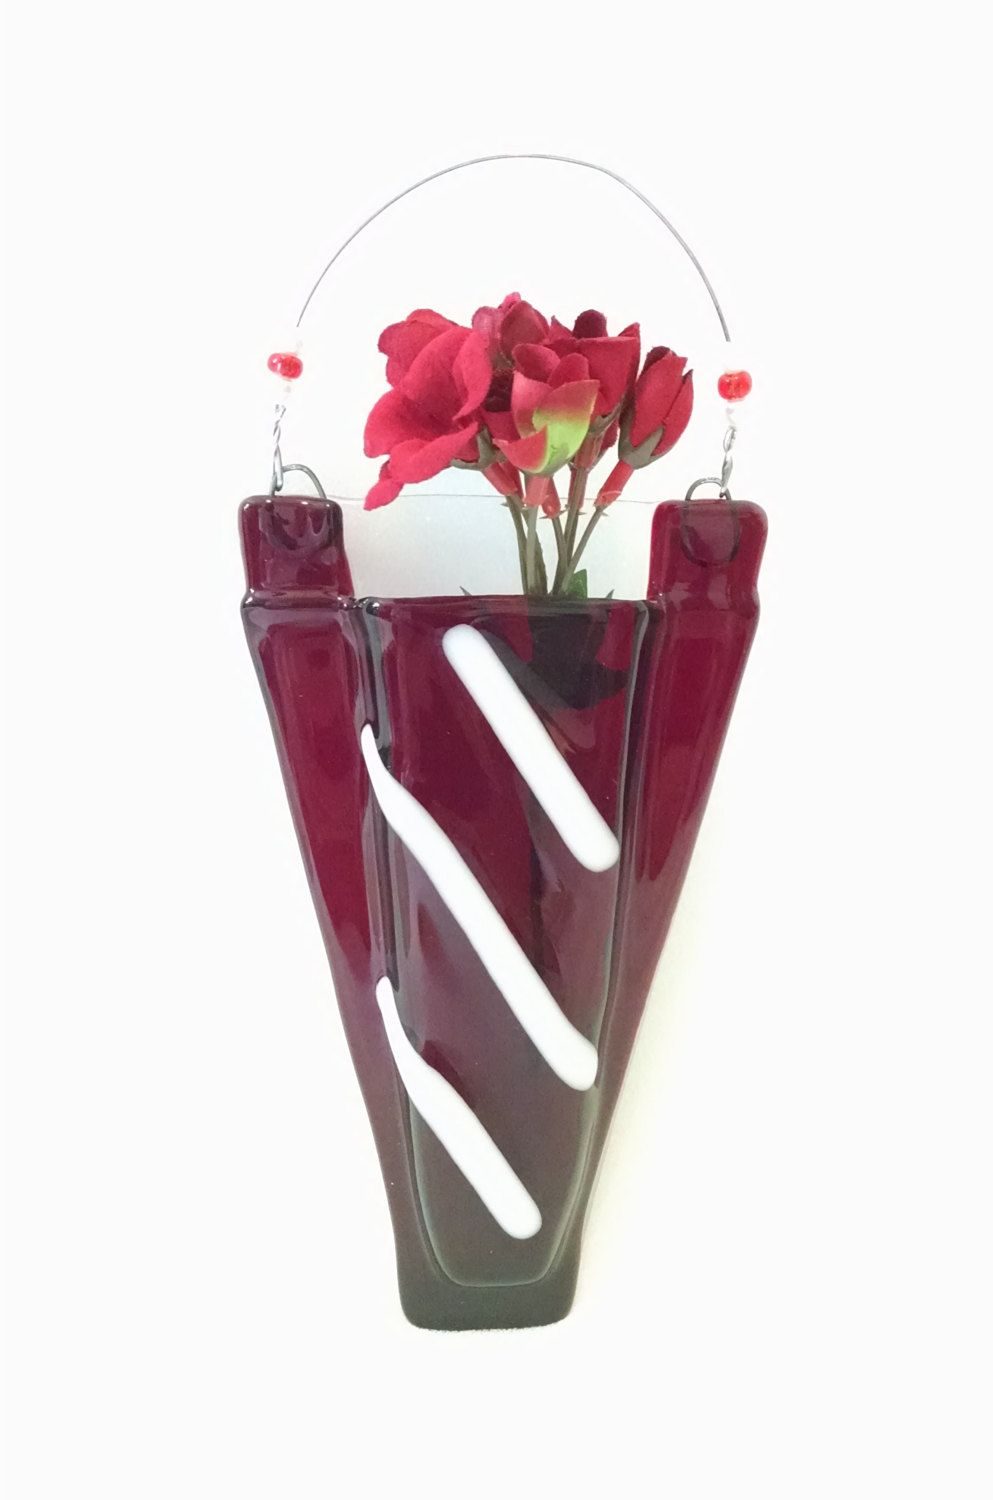 Fused glass pocket vase wall vase red and white wall hanging fused glass pocket vase wall vase red and white wall hanging home reviewsmspy